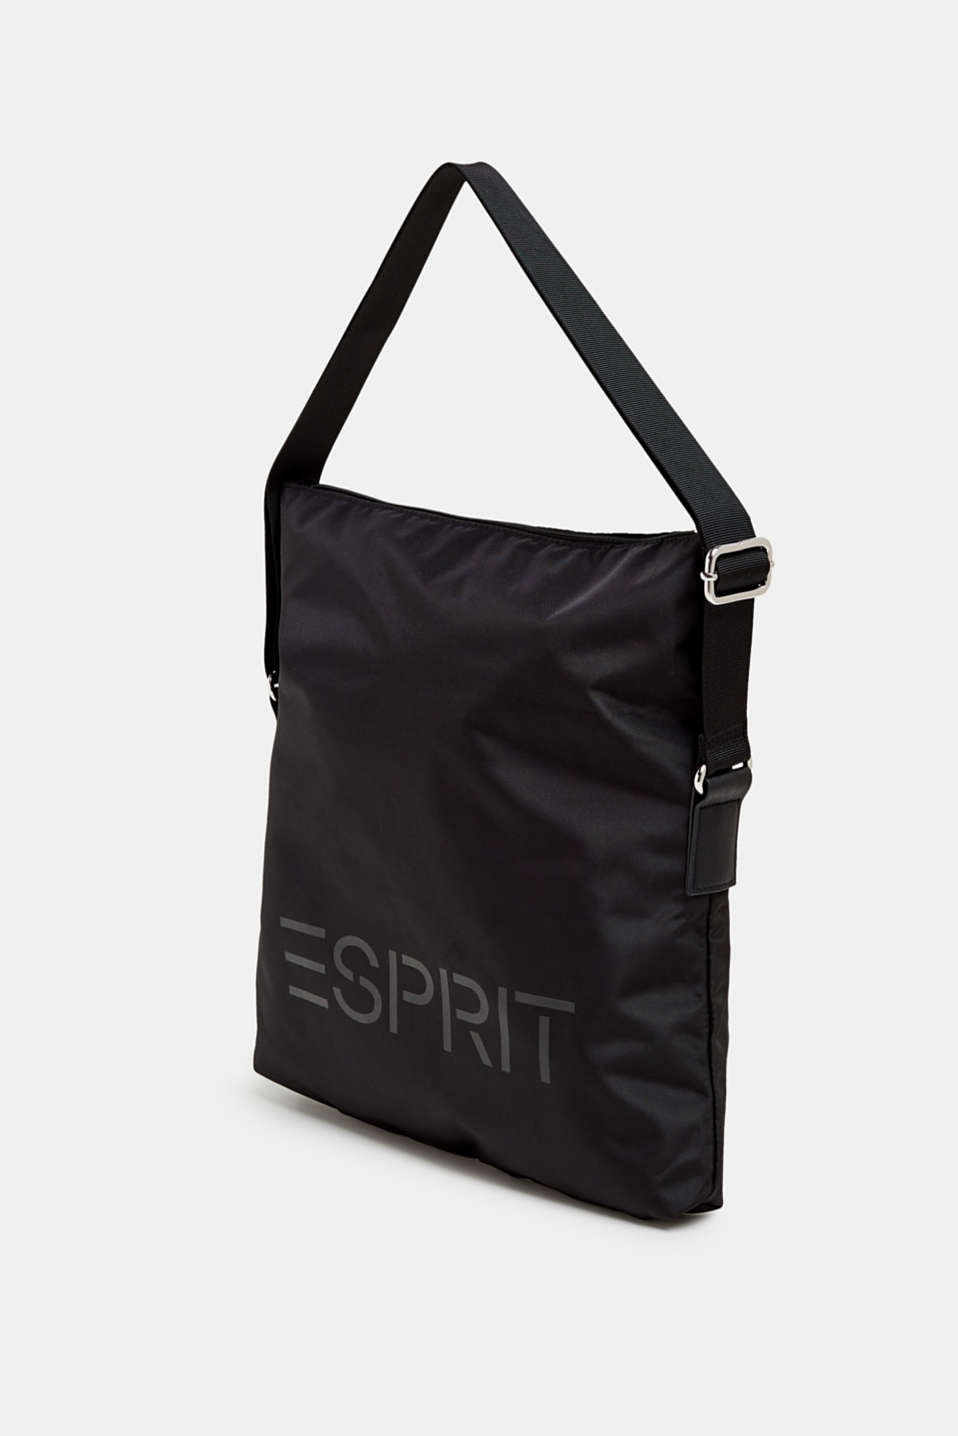 Nylon bag with a logo and adjustable clasp, BLACK, detail image number 2